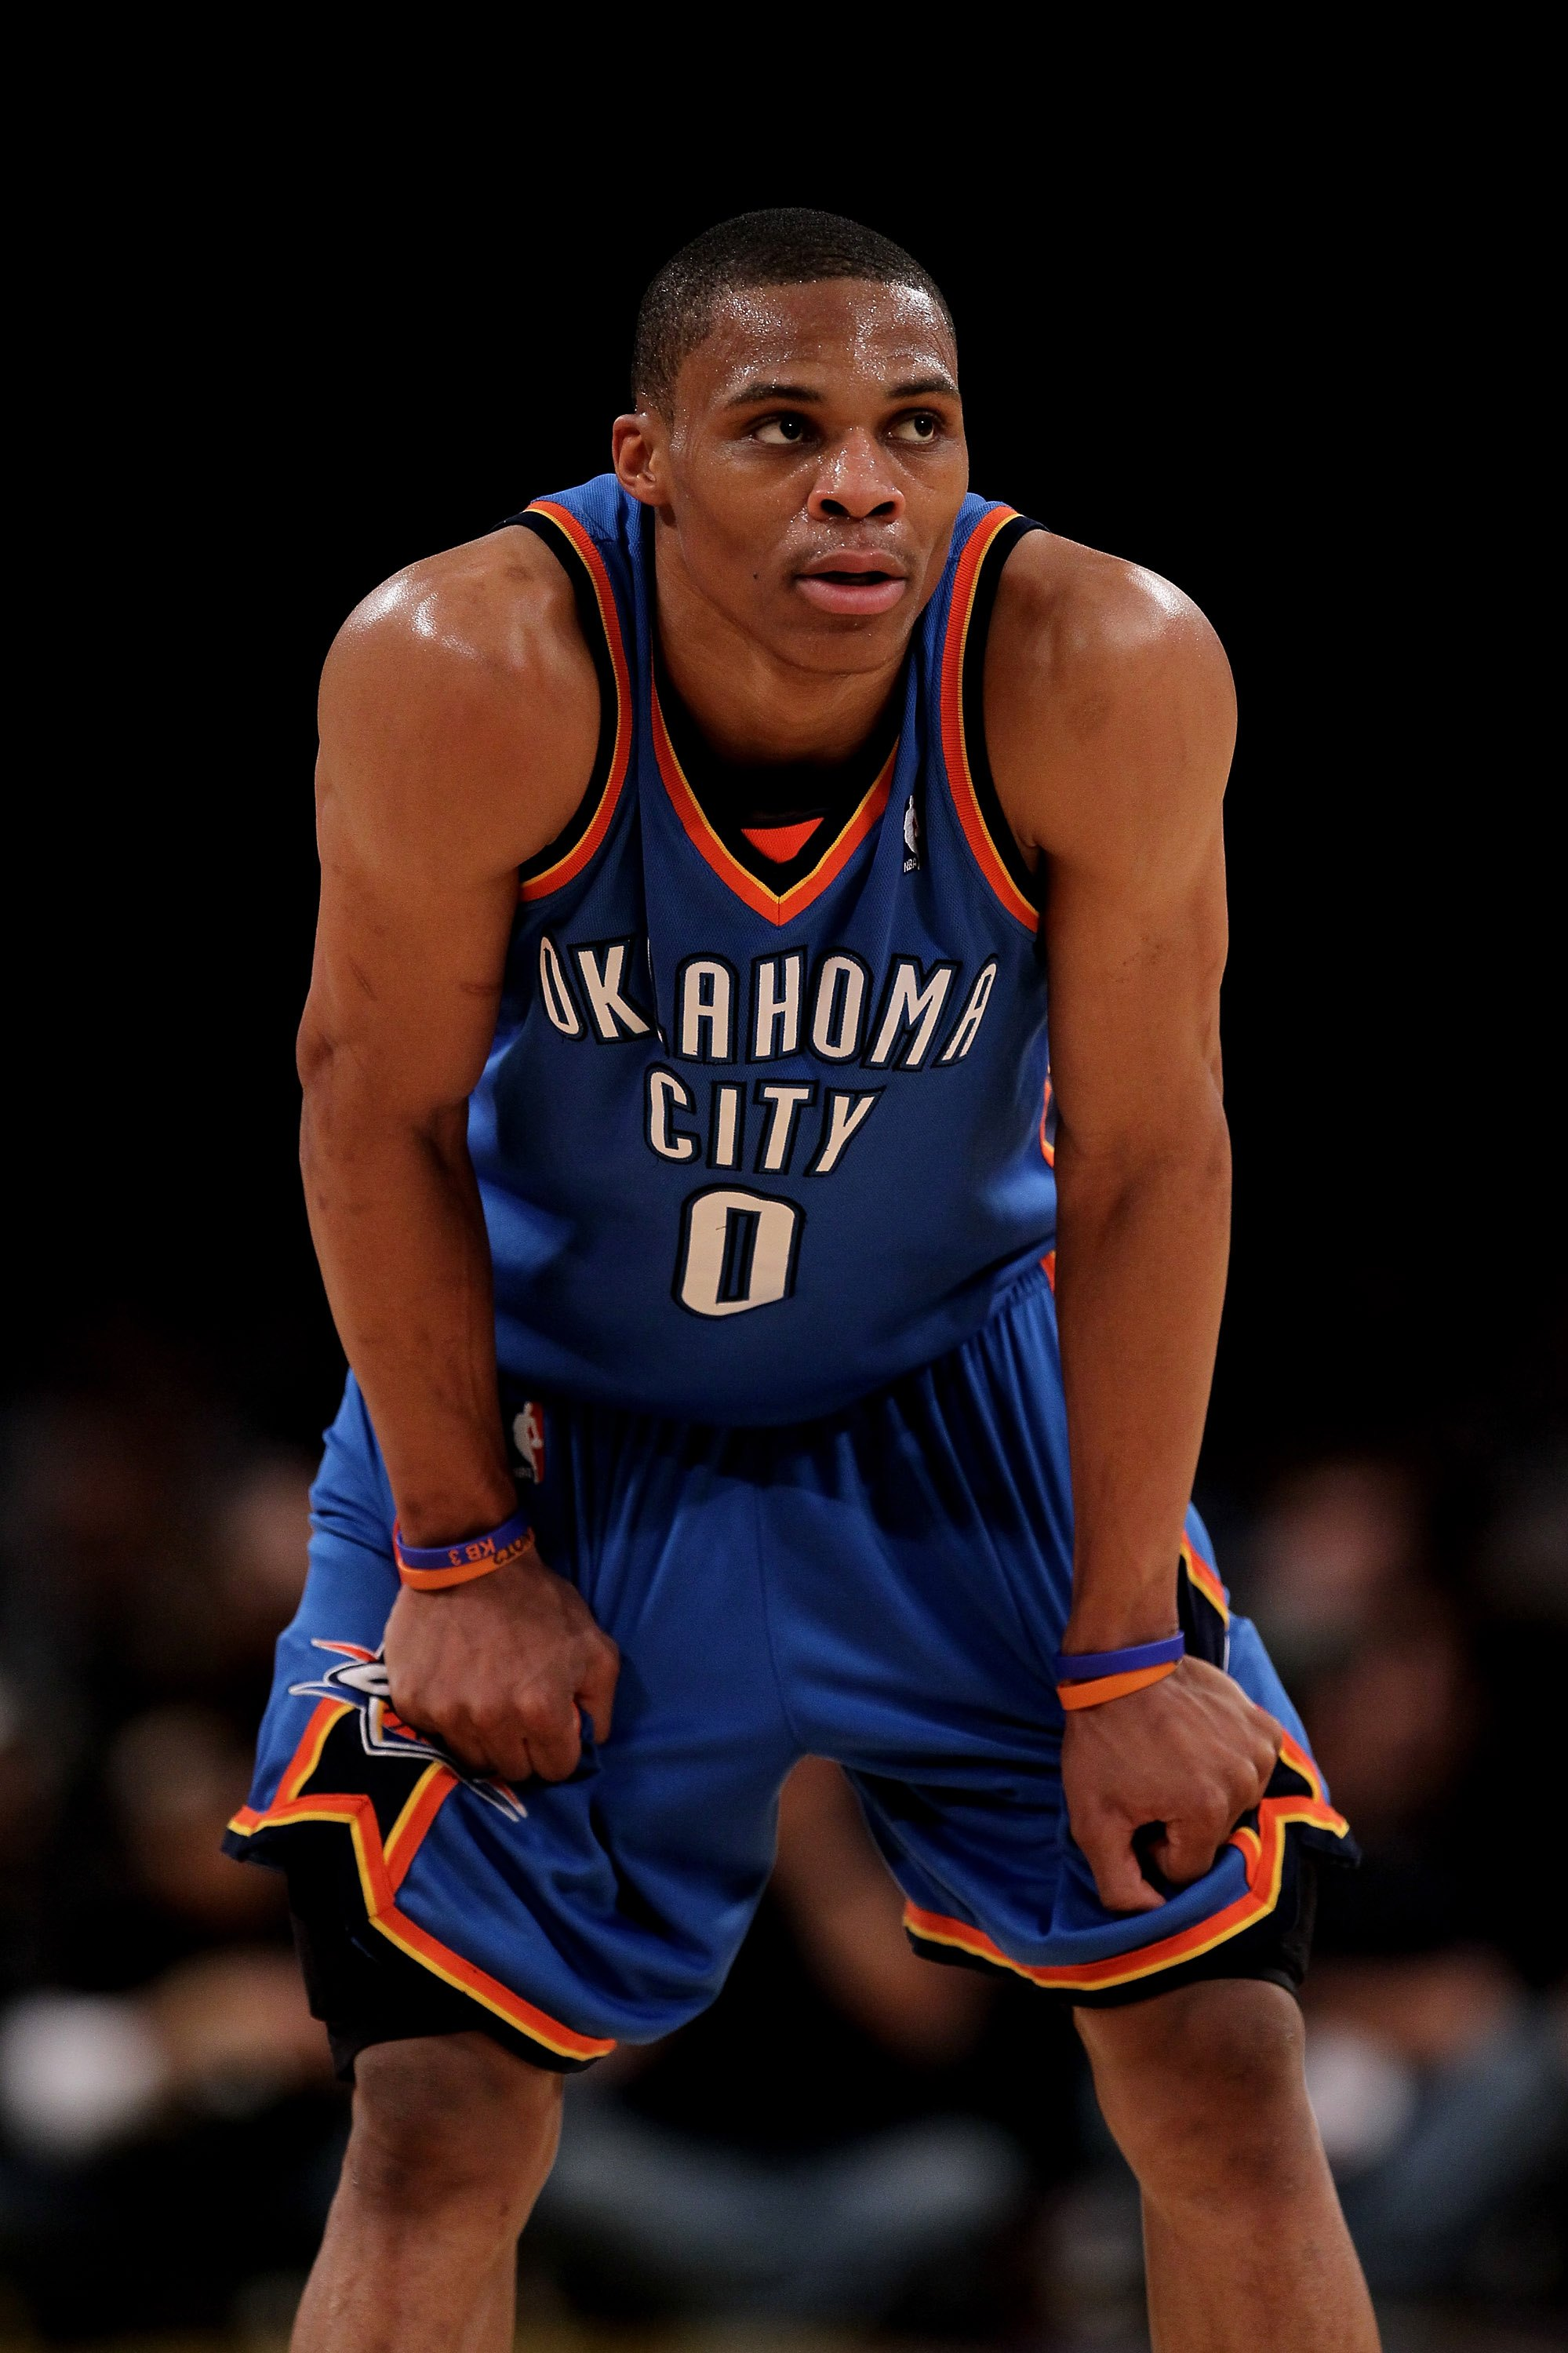 LOS ANGELES - APRIL 20: Russell Westbrook #0 of the Oklahoma City Thunder stands in the game against the Los Angeles Lakers during  Game Two of the Western Conference Quarterfinals of the 2010 NBA Playoffs on April 20, 2010 at Staples Center in Los Angele